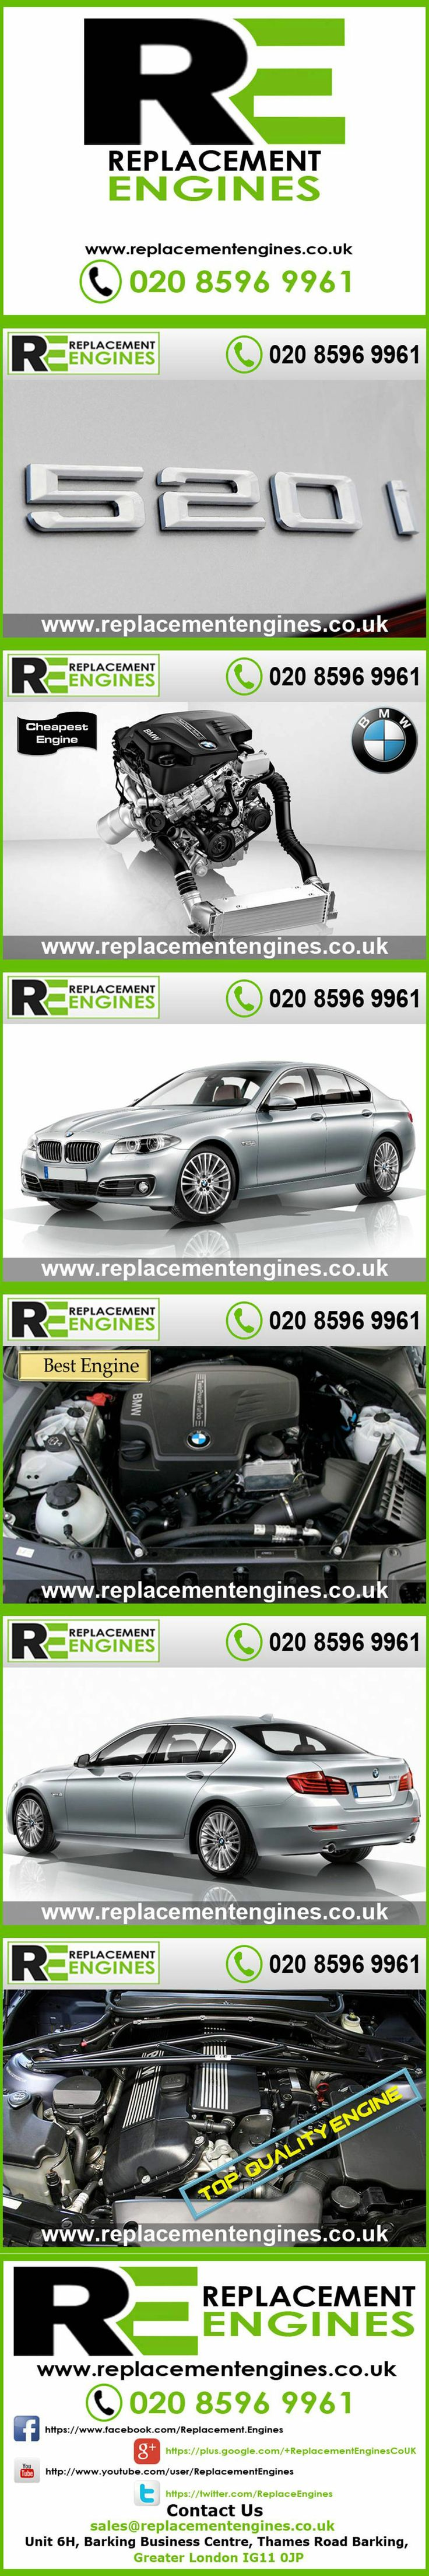 BMW 520i Engines for sale at the cheapest prices, we have low mileage used & reconditioned engines in stock now, ready to be delivered to anywhere in the UK or overseas, visit Replacement Engines website here.  http://www.replacementengines.co.uk/car-md.asp?part=all-bmw-520i-engine&mo_id=520